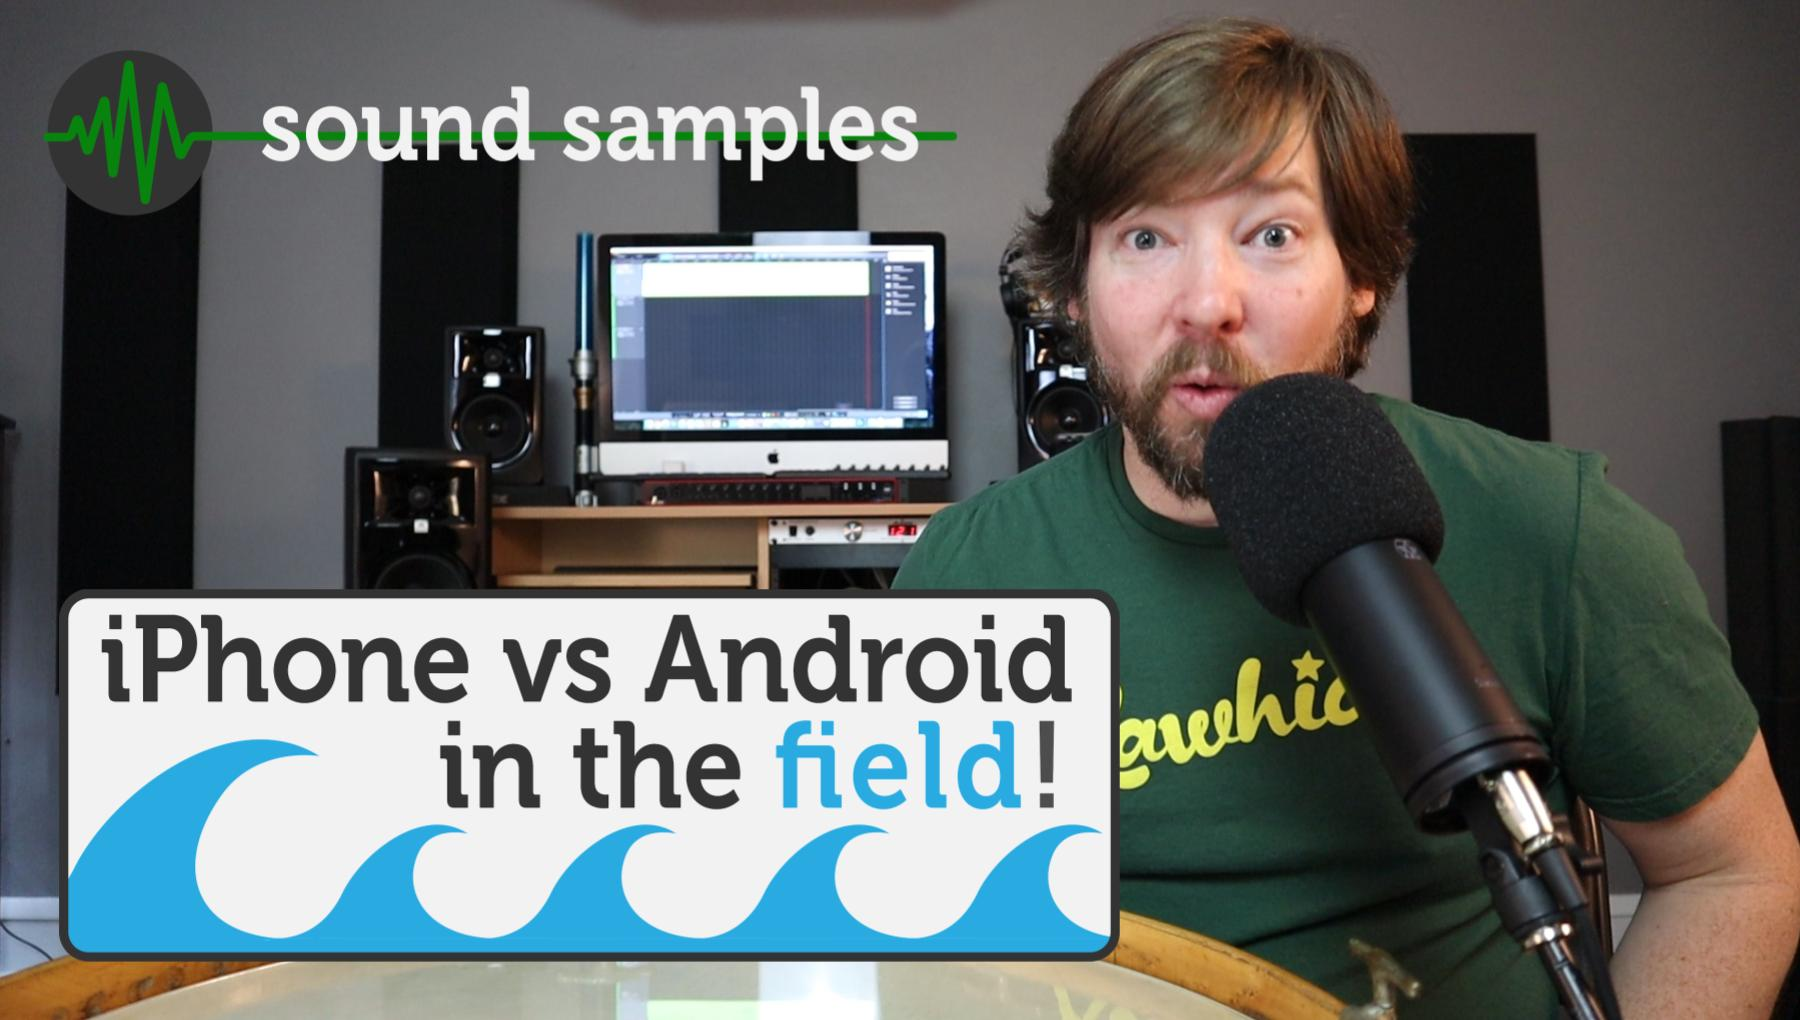 Weekly Show - PPA Unfiltered - iPhone vs. Android - Which one sounds better??